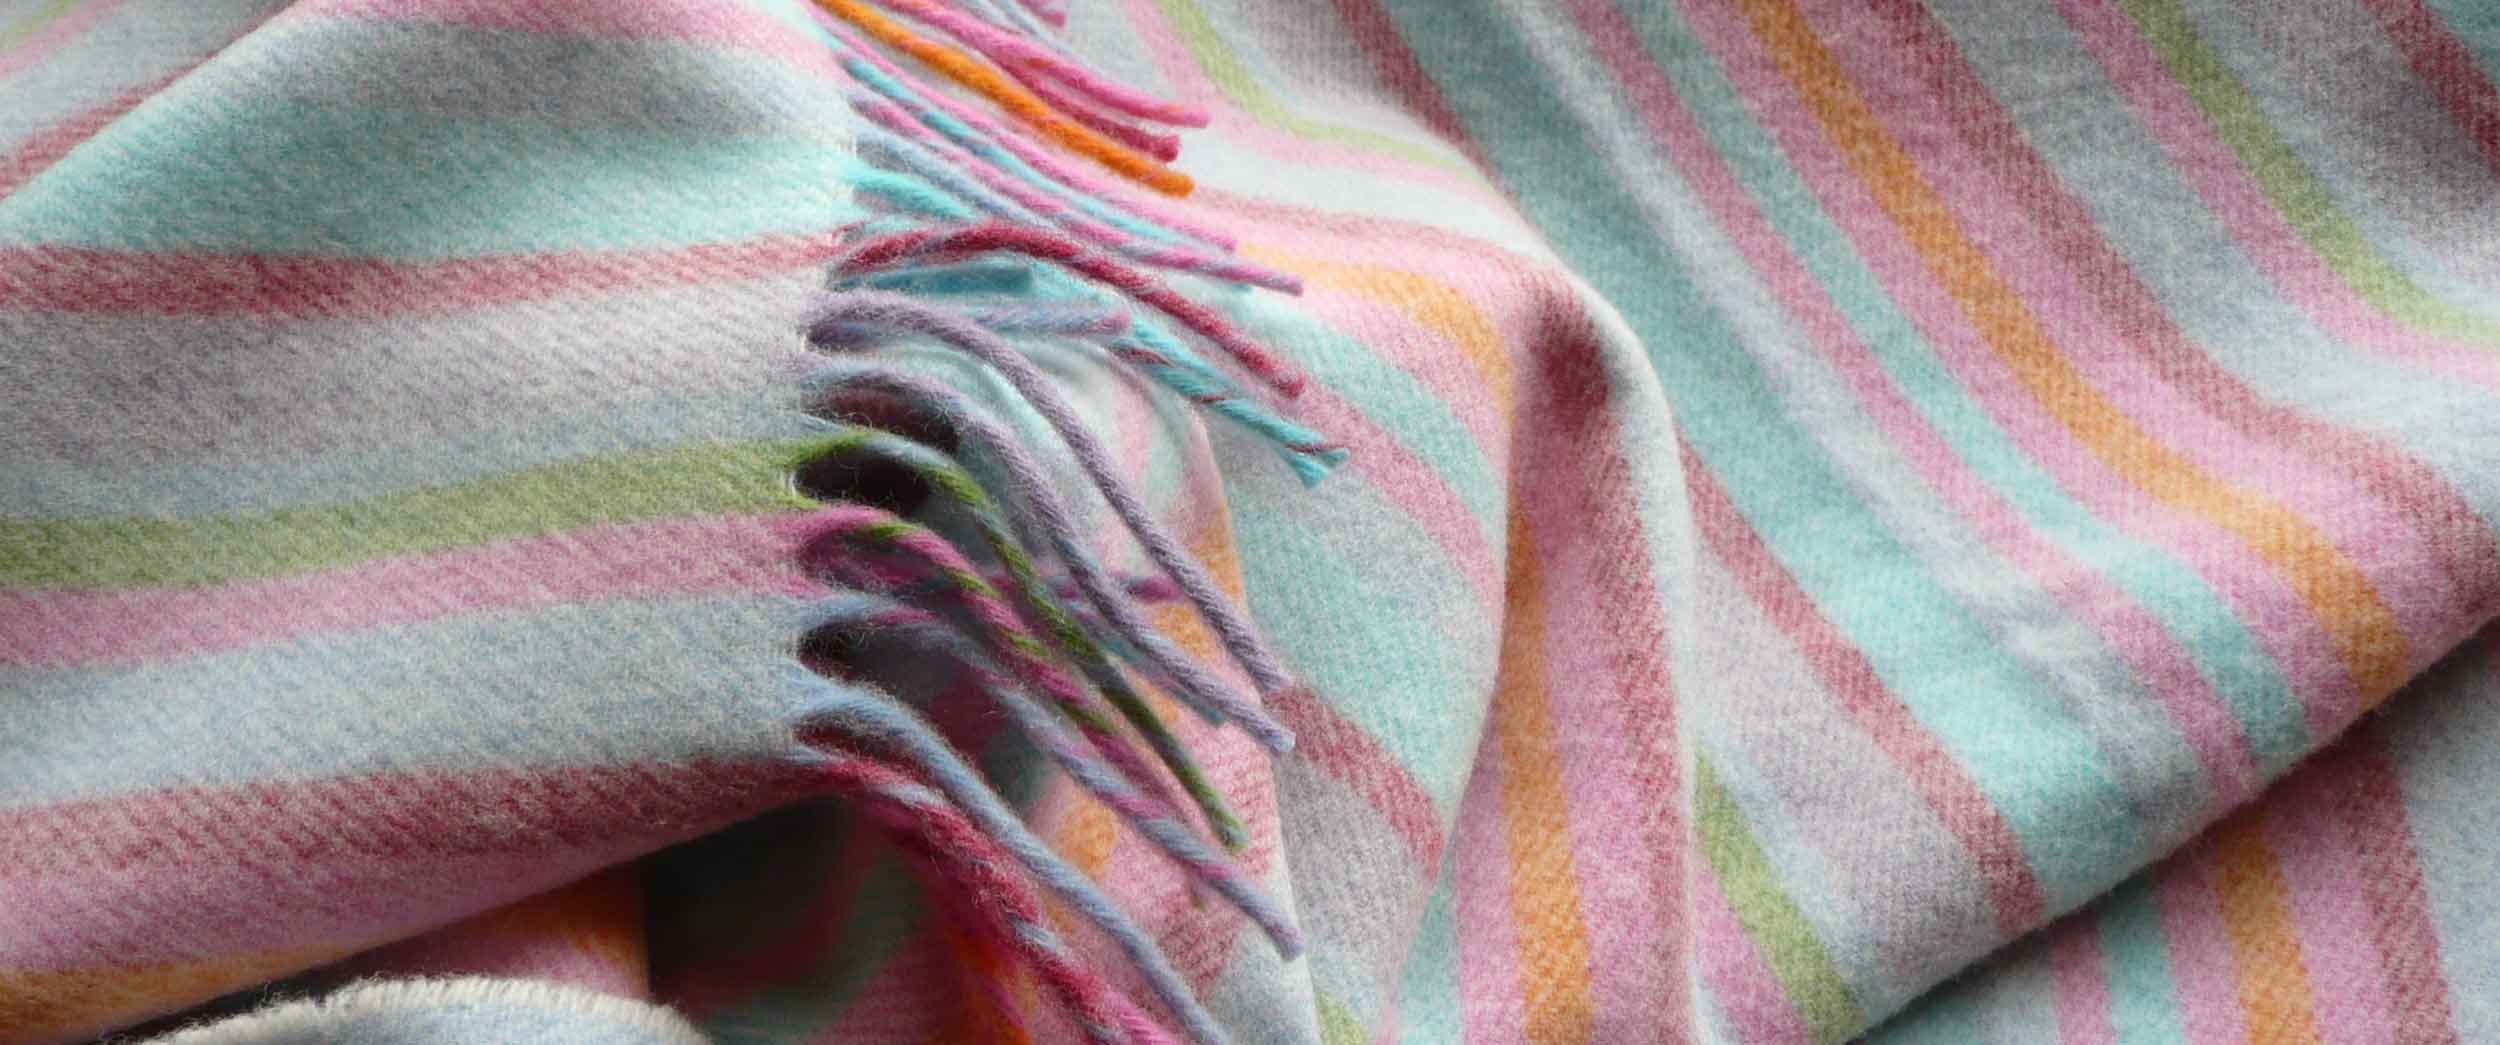 Pink Striped Lambswool Throws